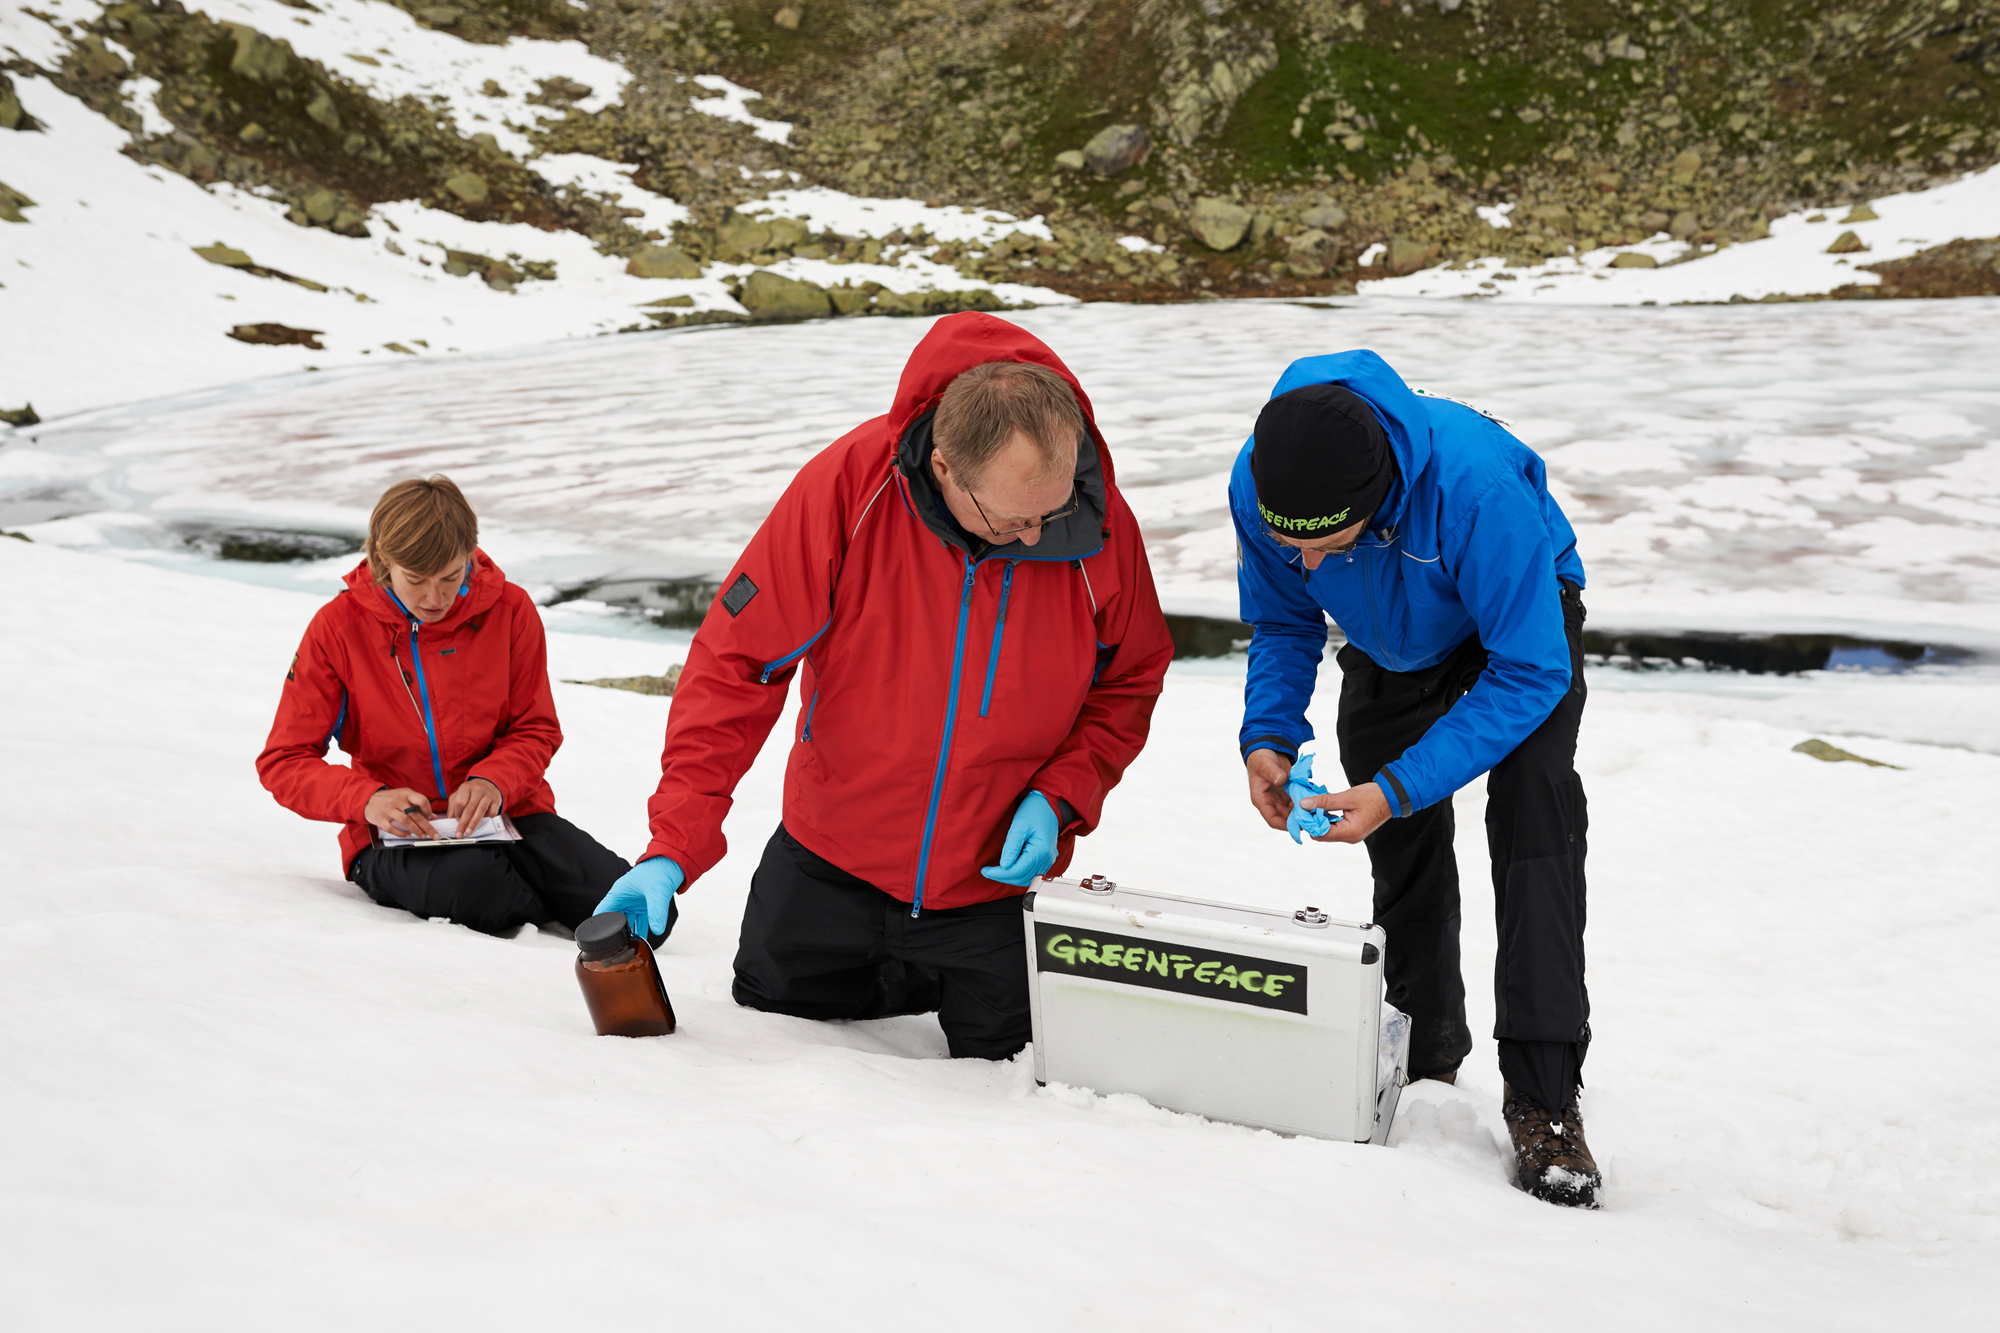 Greenpeace scientists collect water and snow samples to test for PFCs.